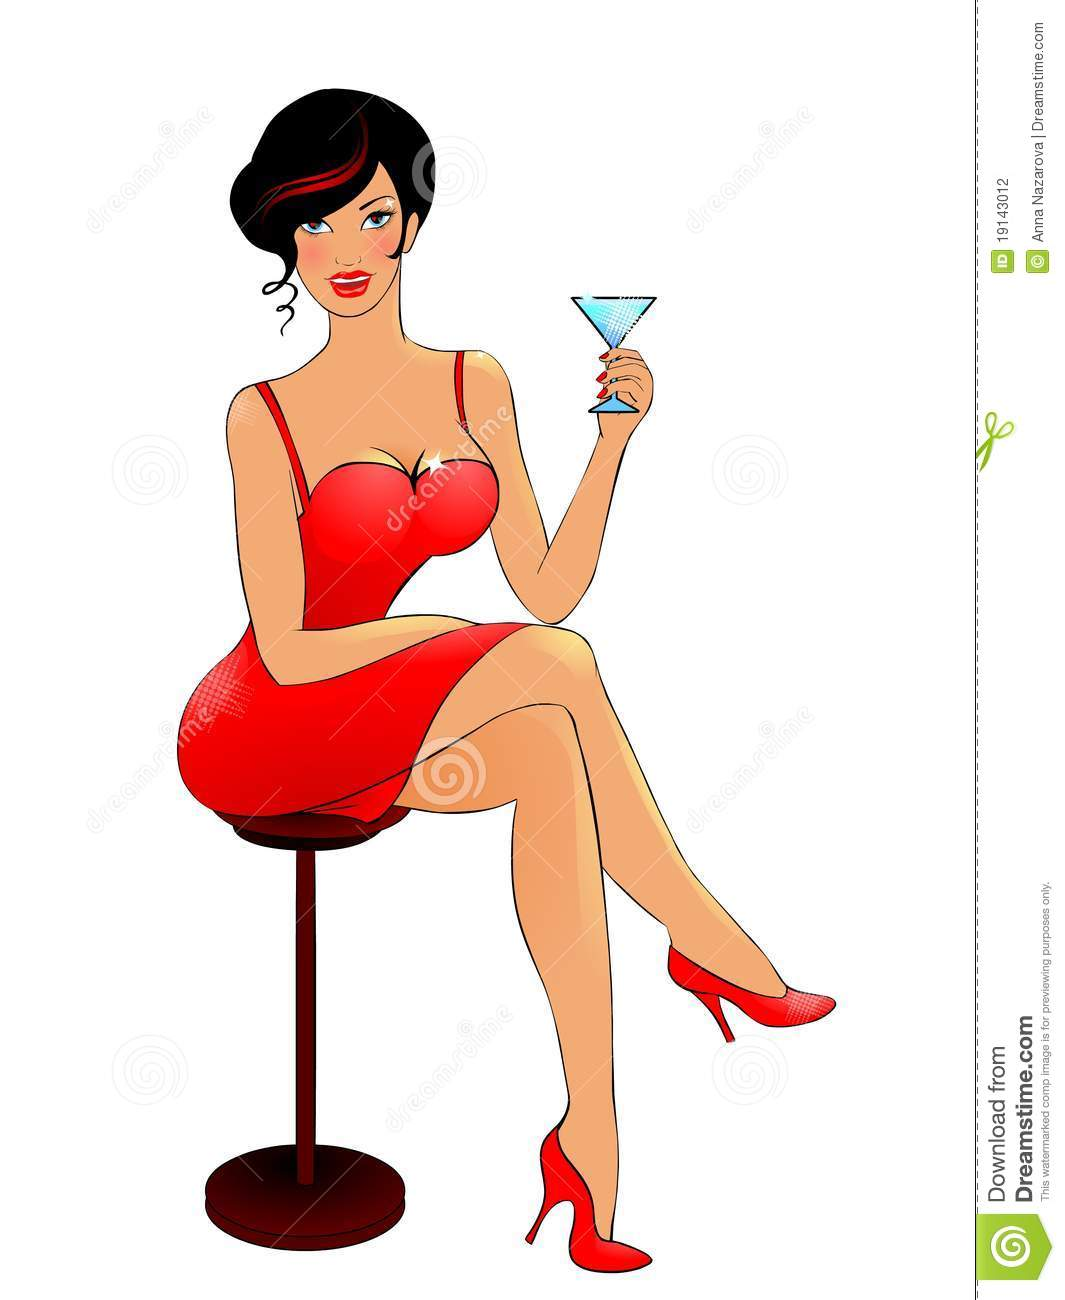 flirting moves that work on women pictures images pictures clip art